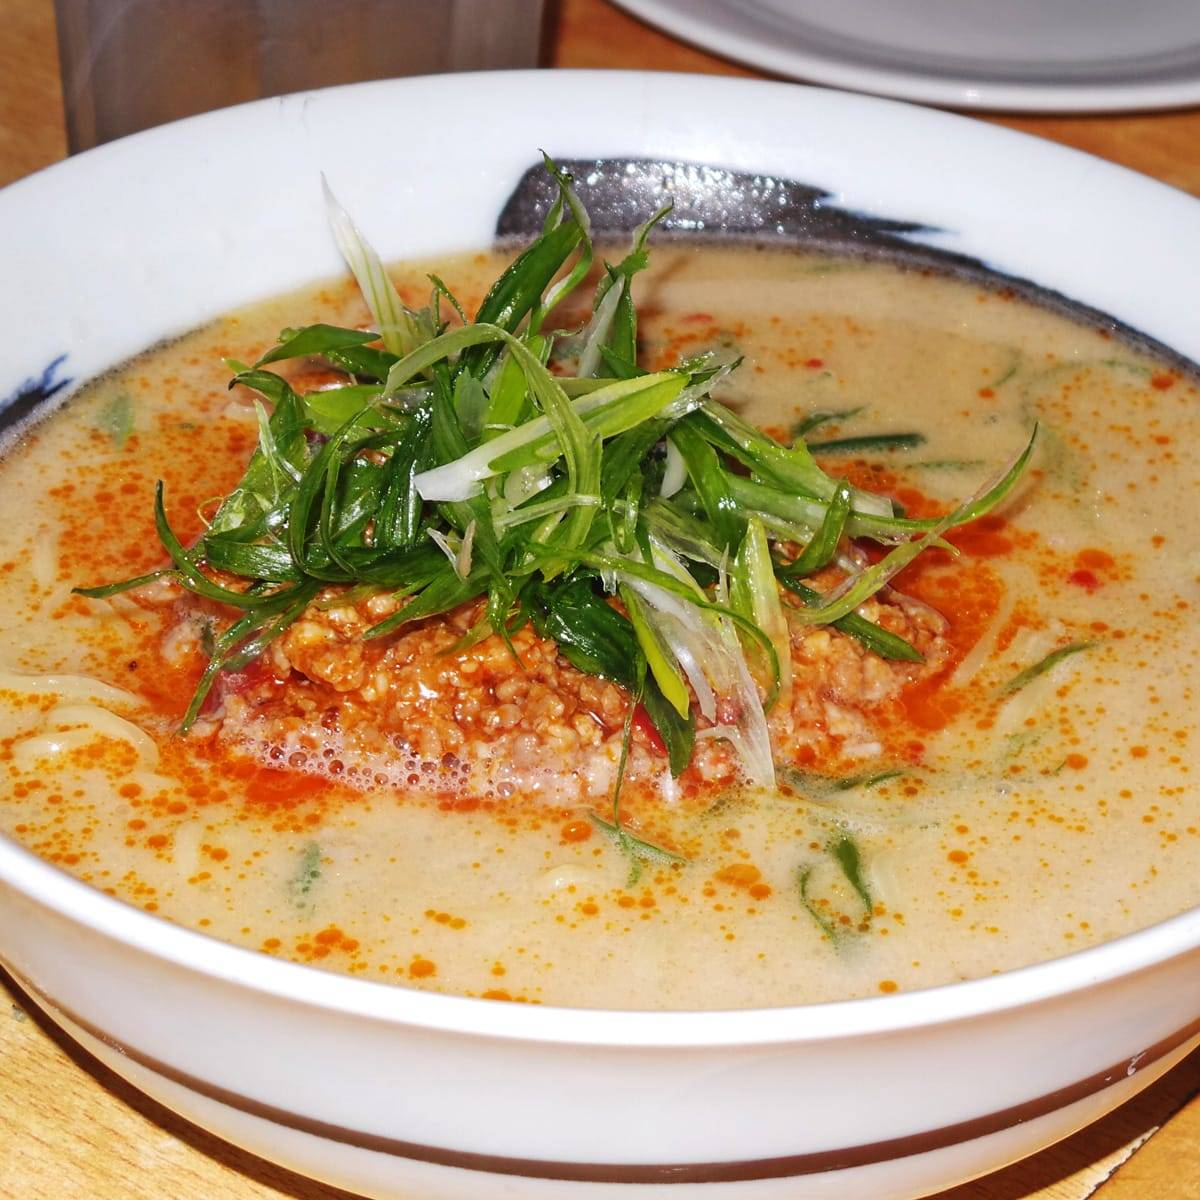 Solid Bowls of Ramen & Other Japanese Pub Food near Port Authority at Tabata Ramen